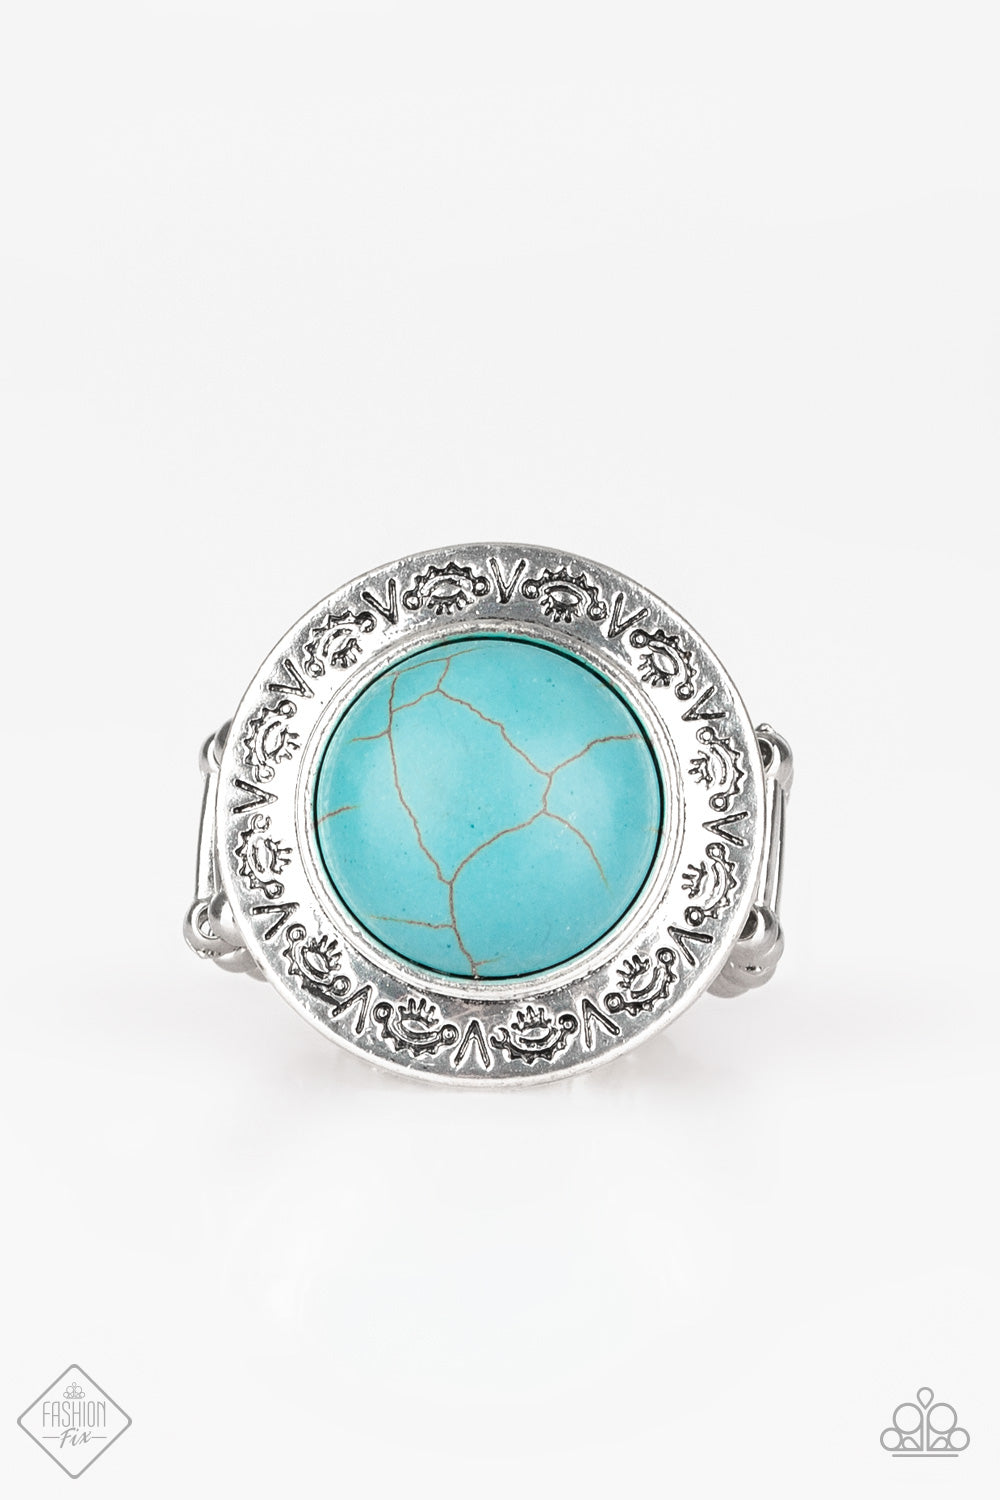 Paparazzi Geo Glyphs Blue Turquoise Ring Fashion Fix Trend Ble